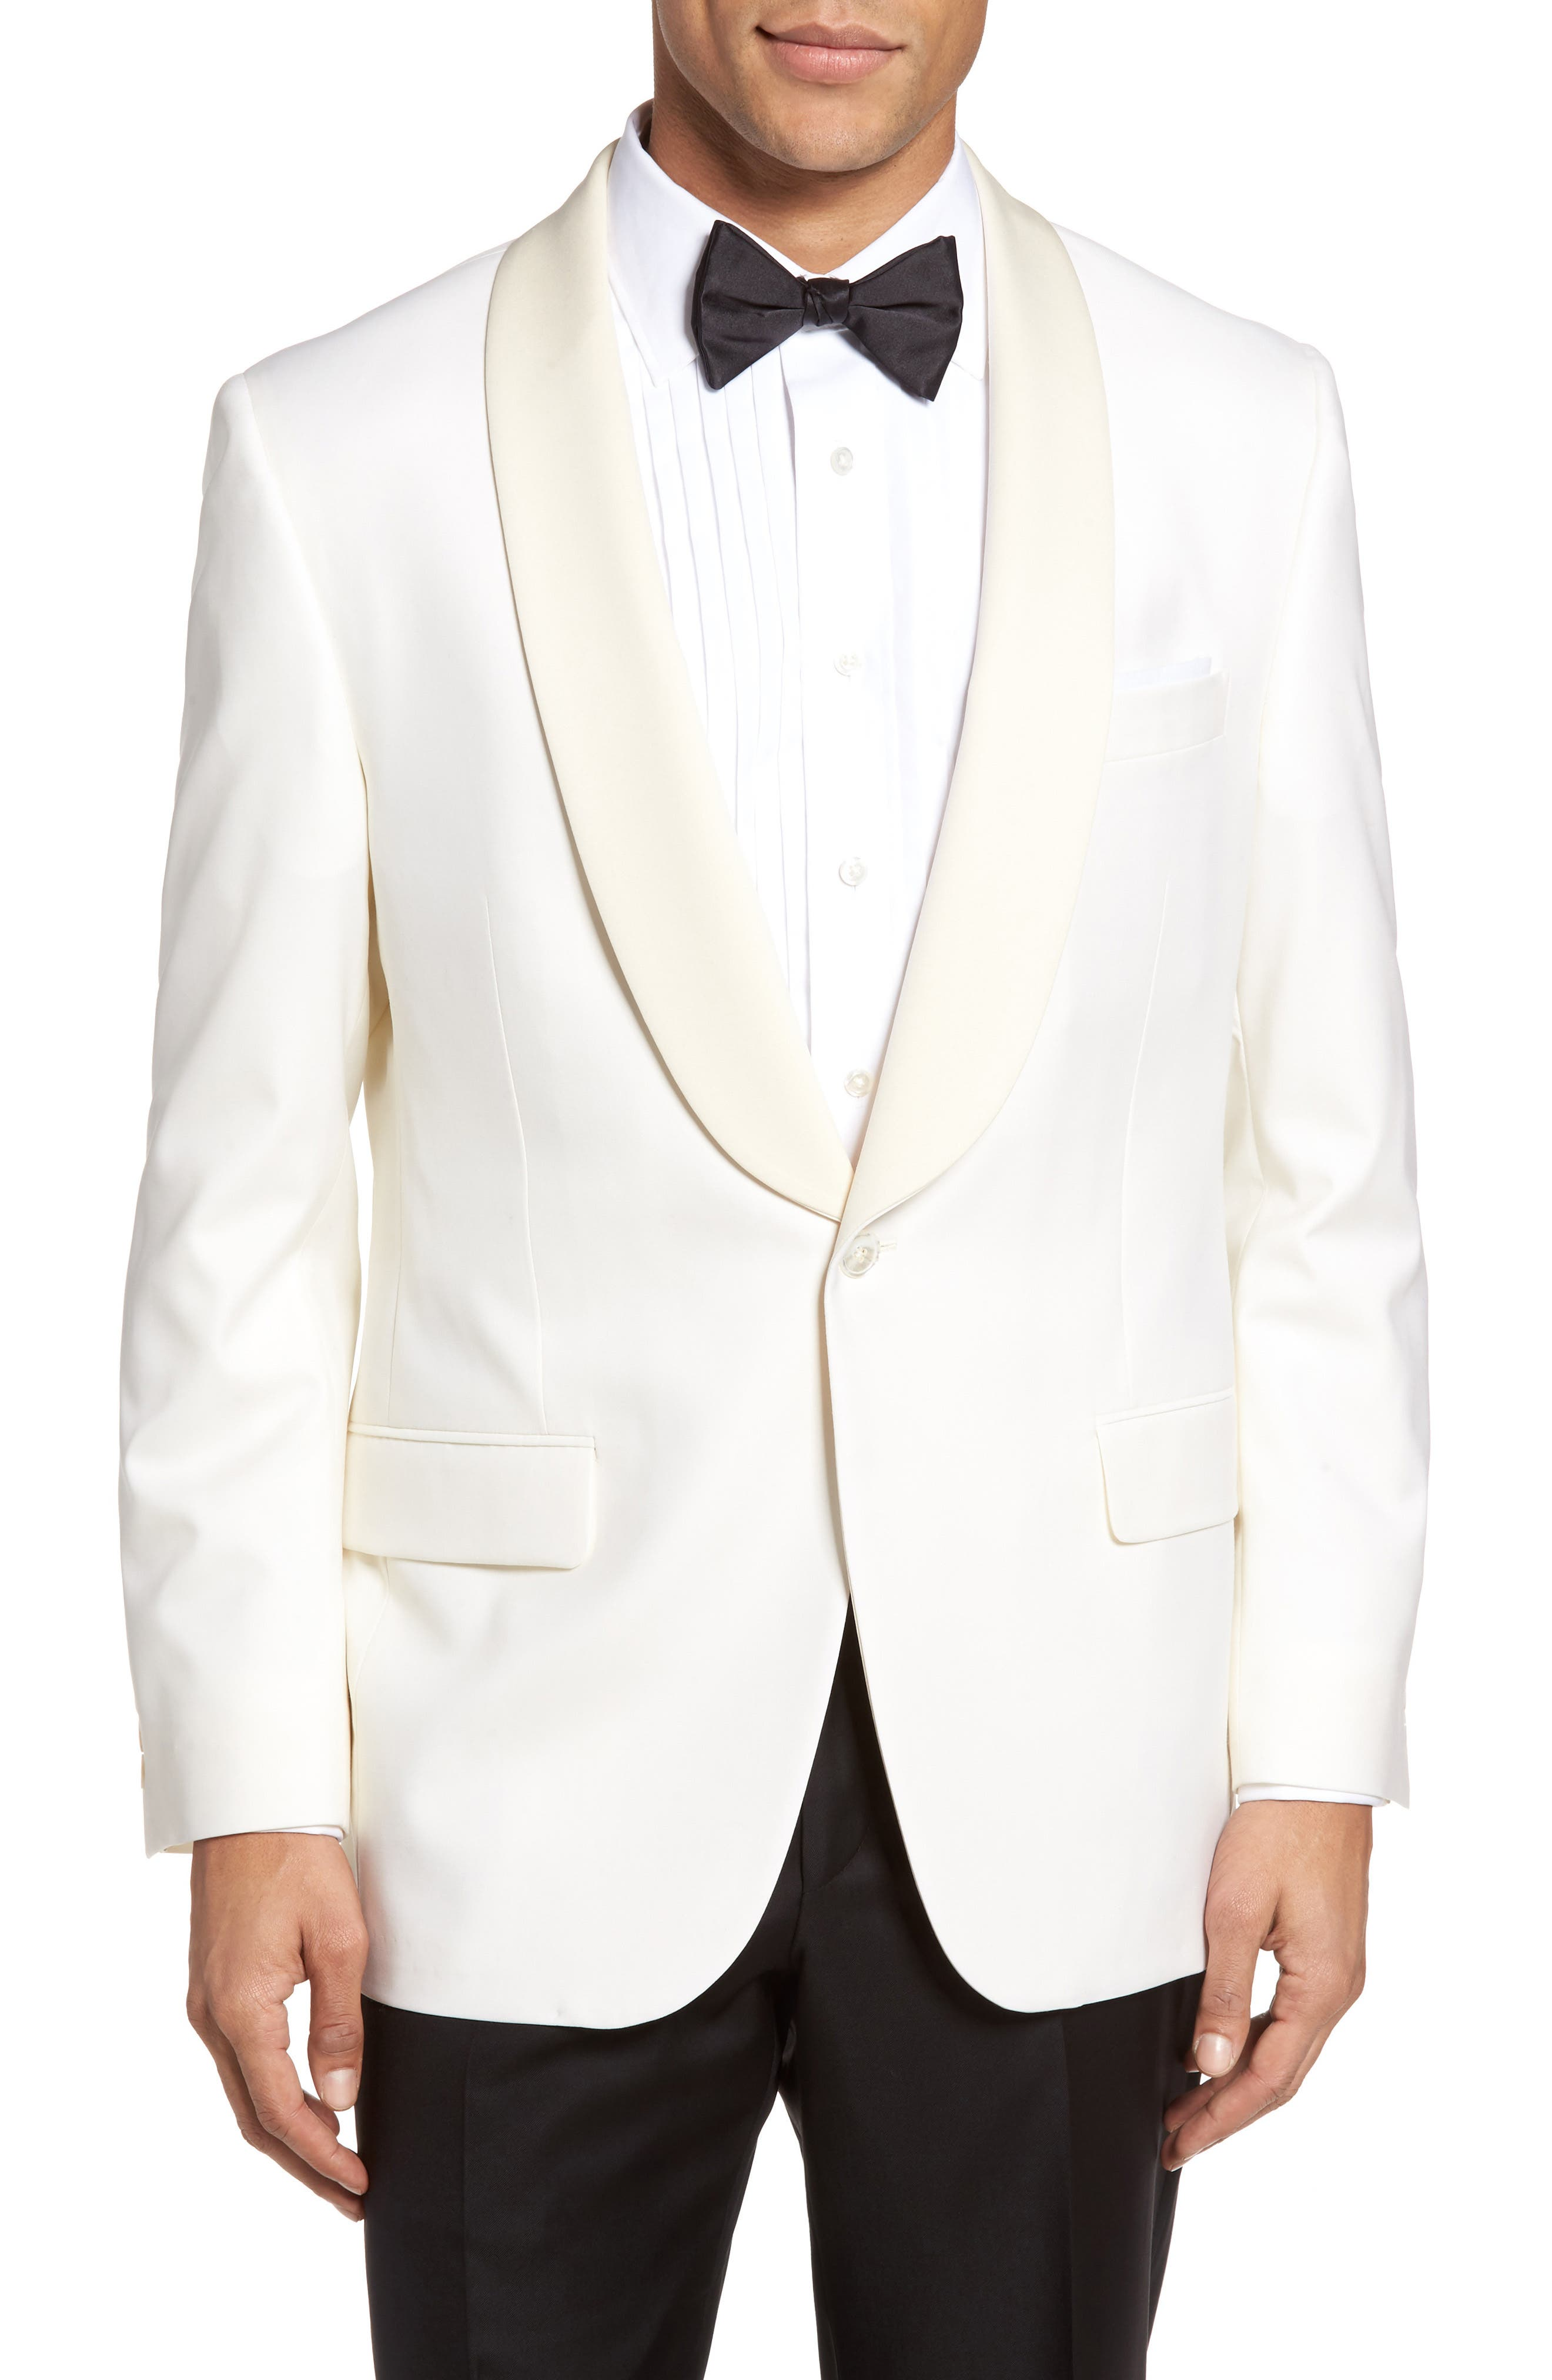 New Vintage Tuxedos, Tailcoats, Morning Suits, Dinner Jackets Mens Hickey Freeman Classic B Fit Wool Dinner Jacket Size 40 R - White $1,295.00 AT vintagedancer.com